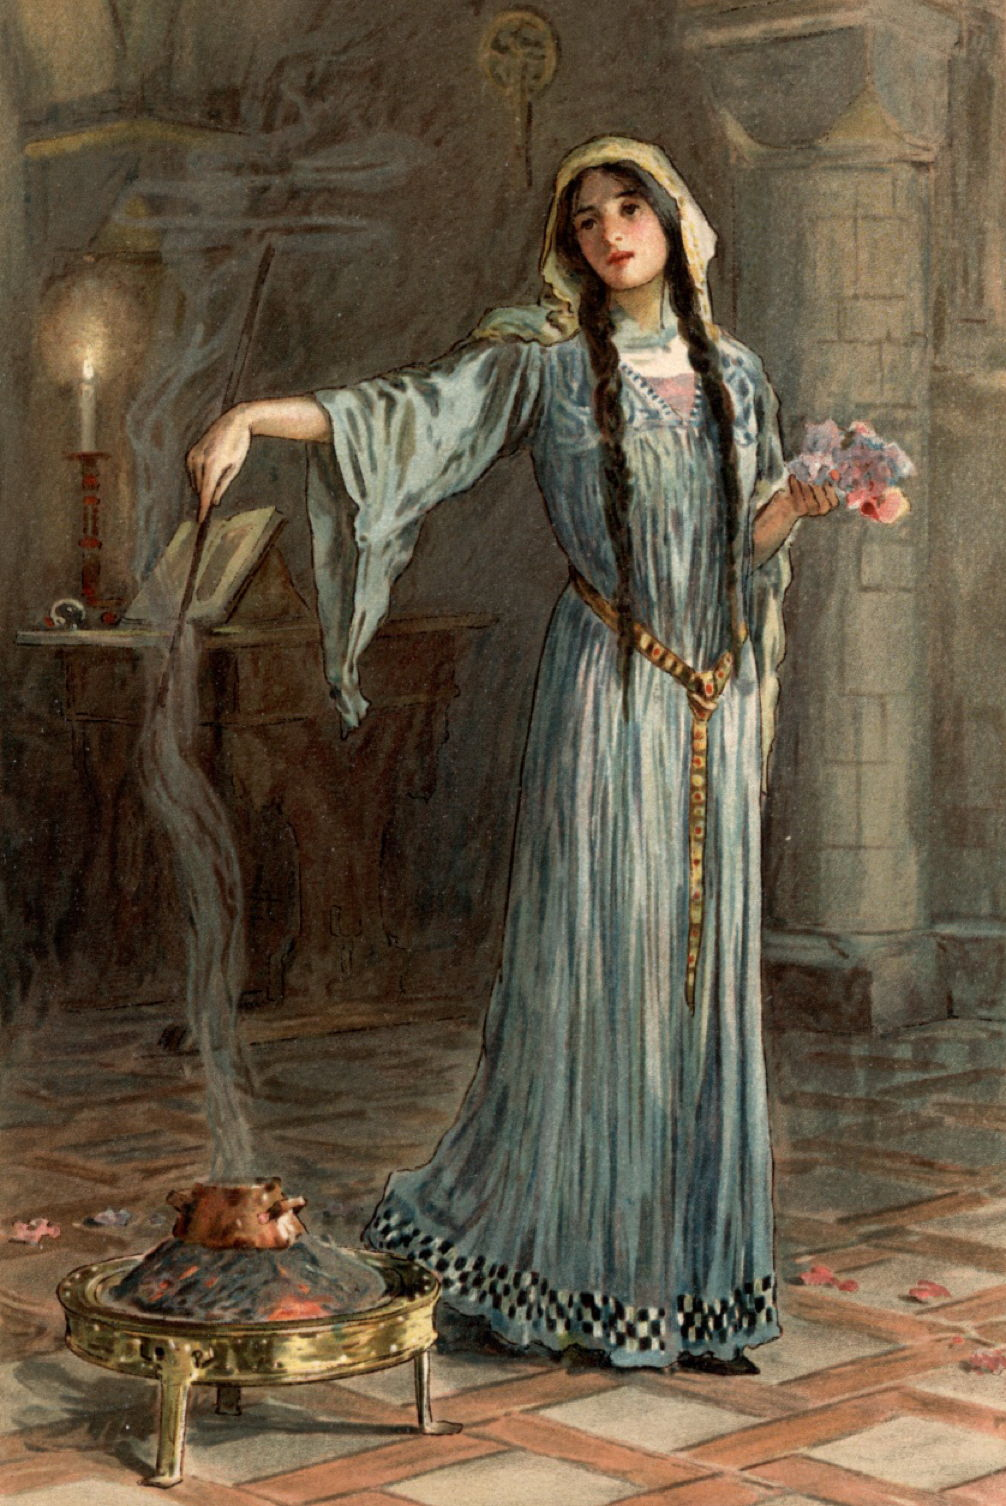 King Arthur's women: 1 Morgan le Fay